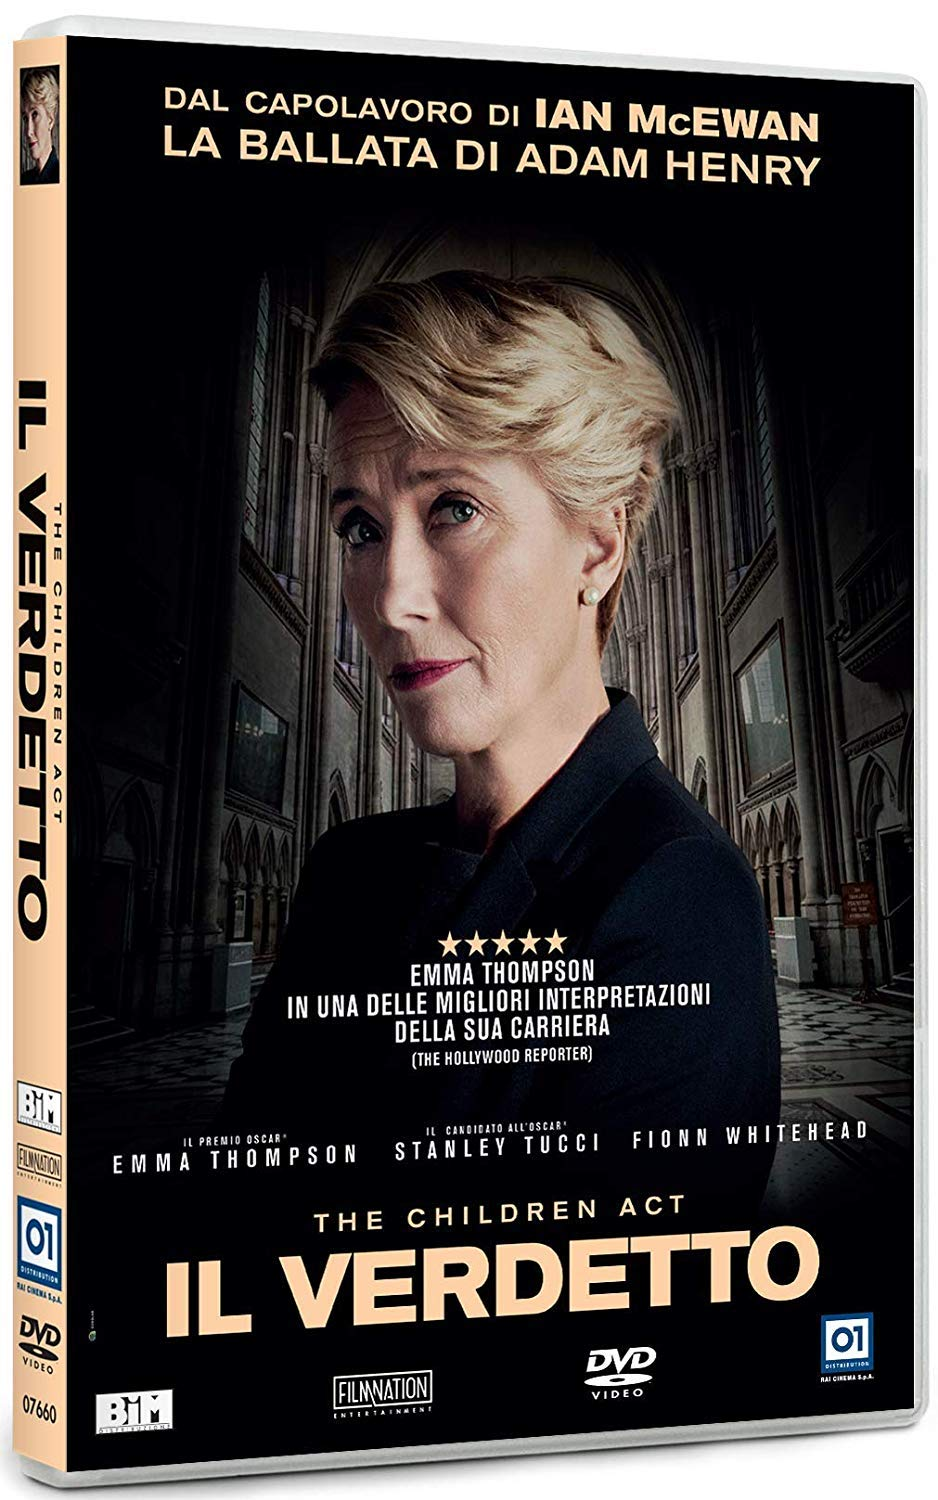 THE CHILDREN ACT - IL VERDETTO (DVD)